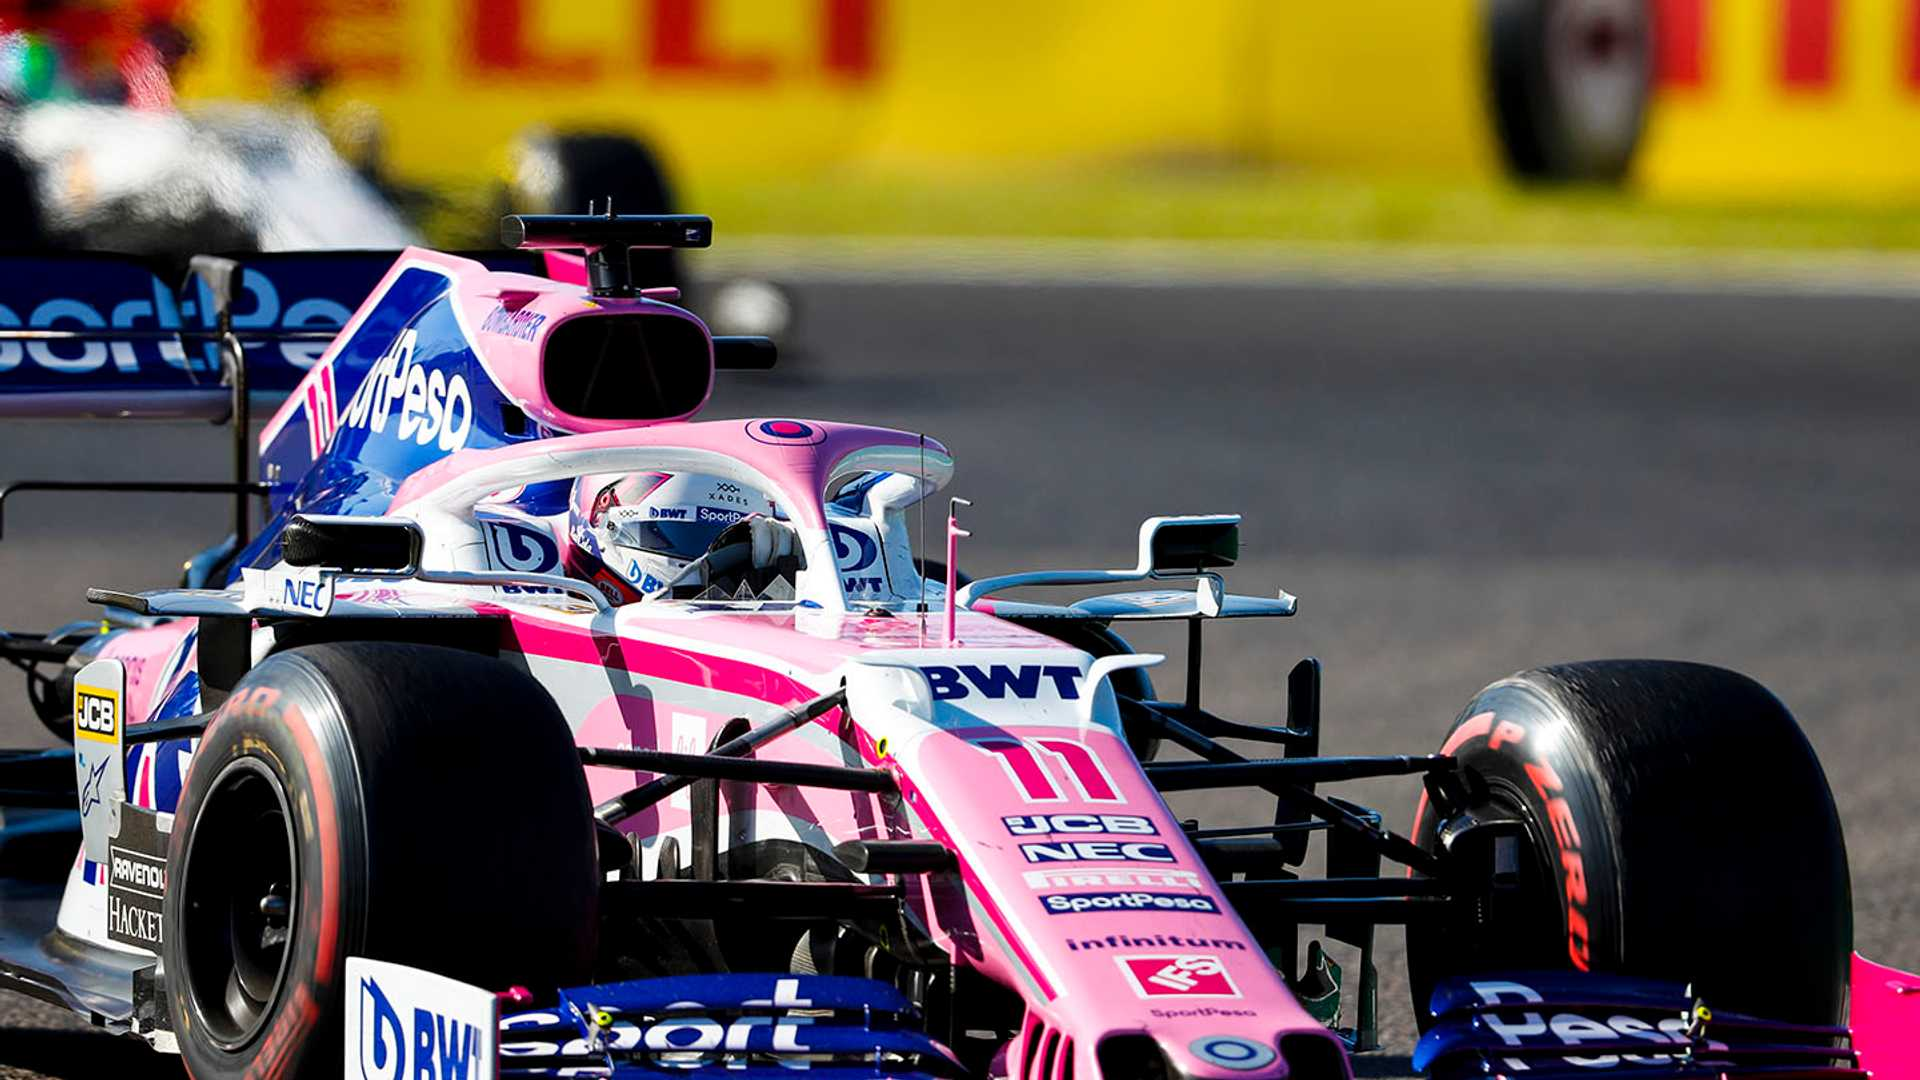 Japanese GP results altered after race was declared early